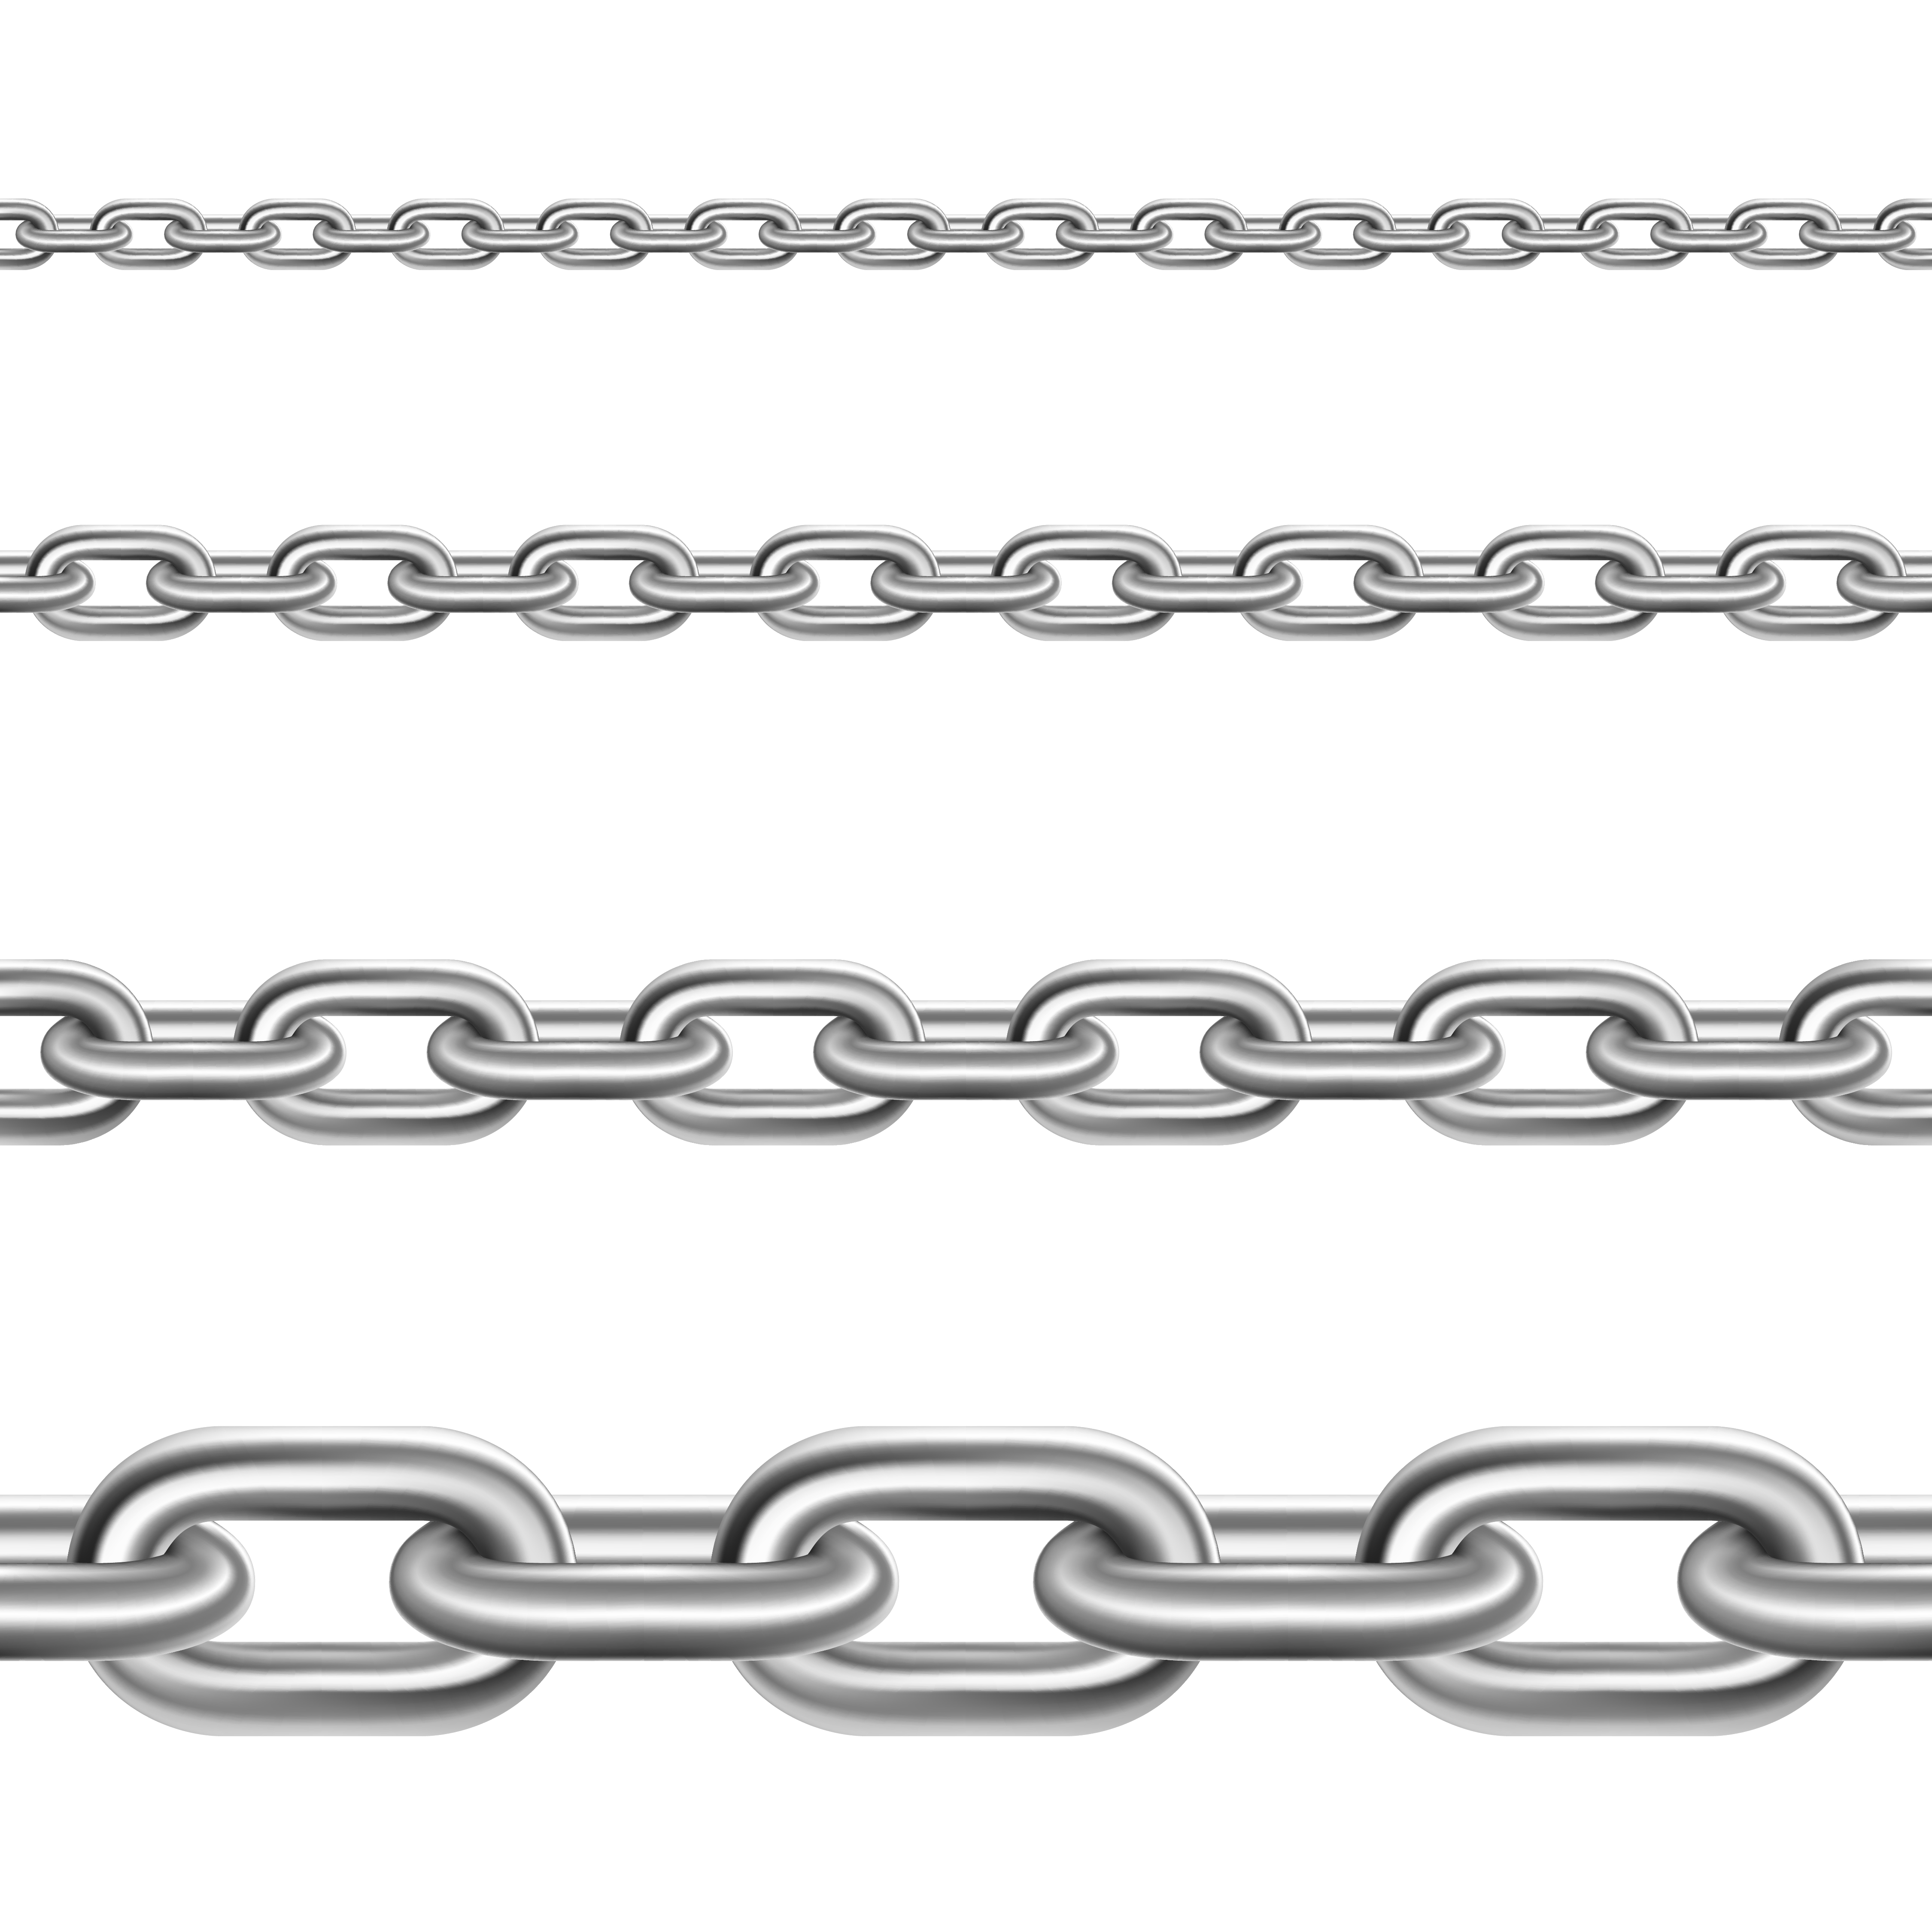 Steel Chains Horizontal Realistic Set 477466 Vector Art at ...  Chain Vector